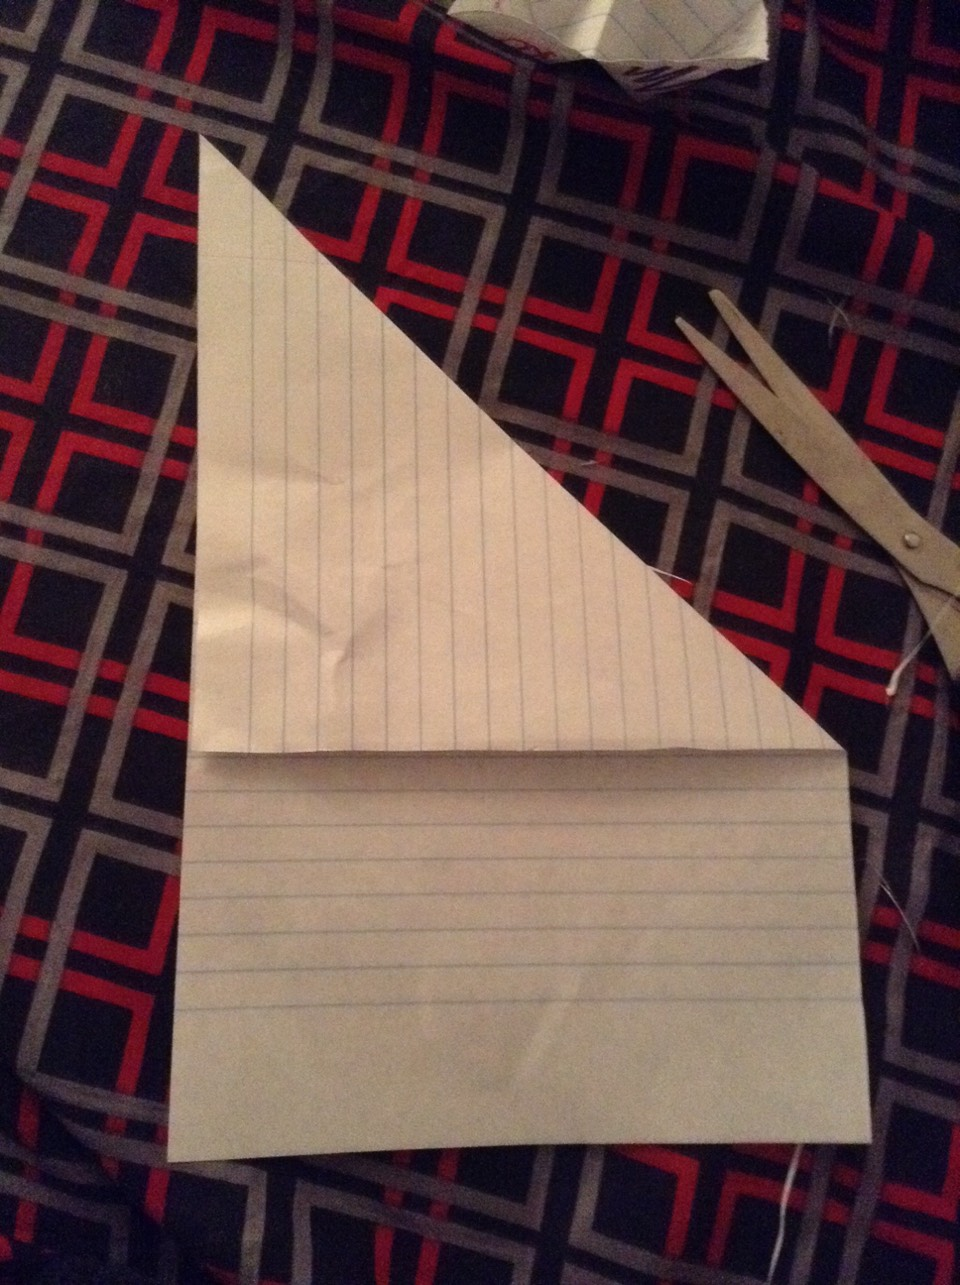 2) Fold it as if it looked like the little sails of a sail boat.